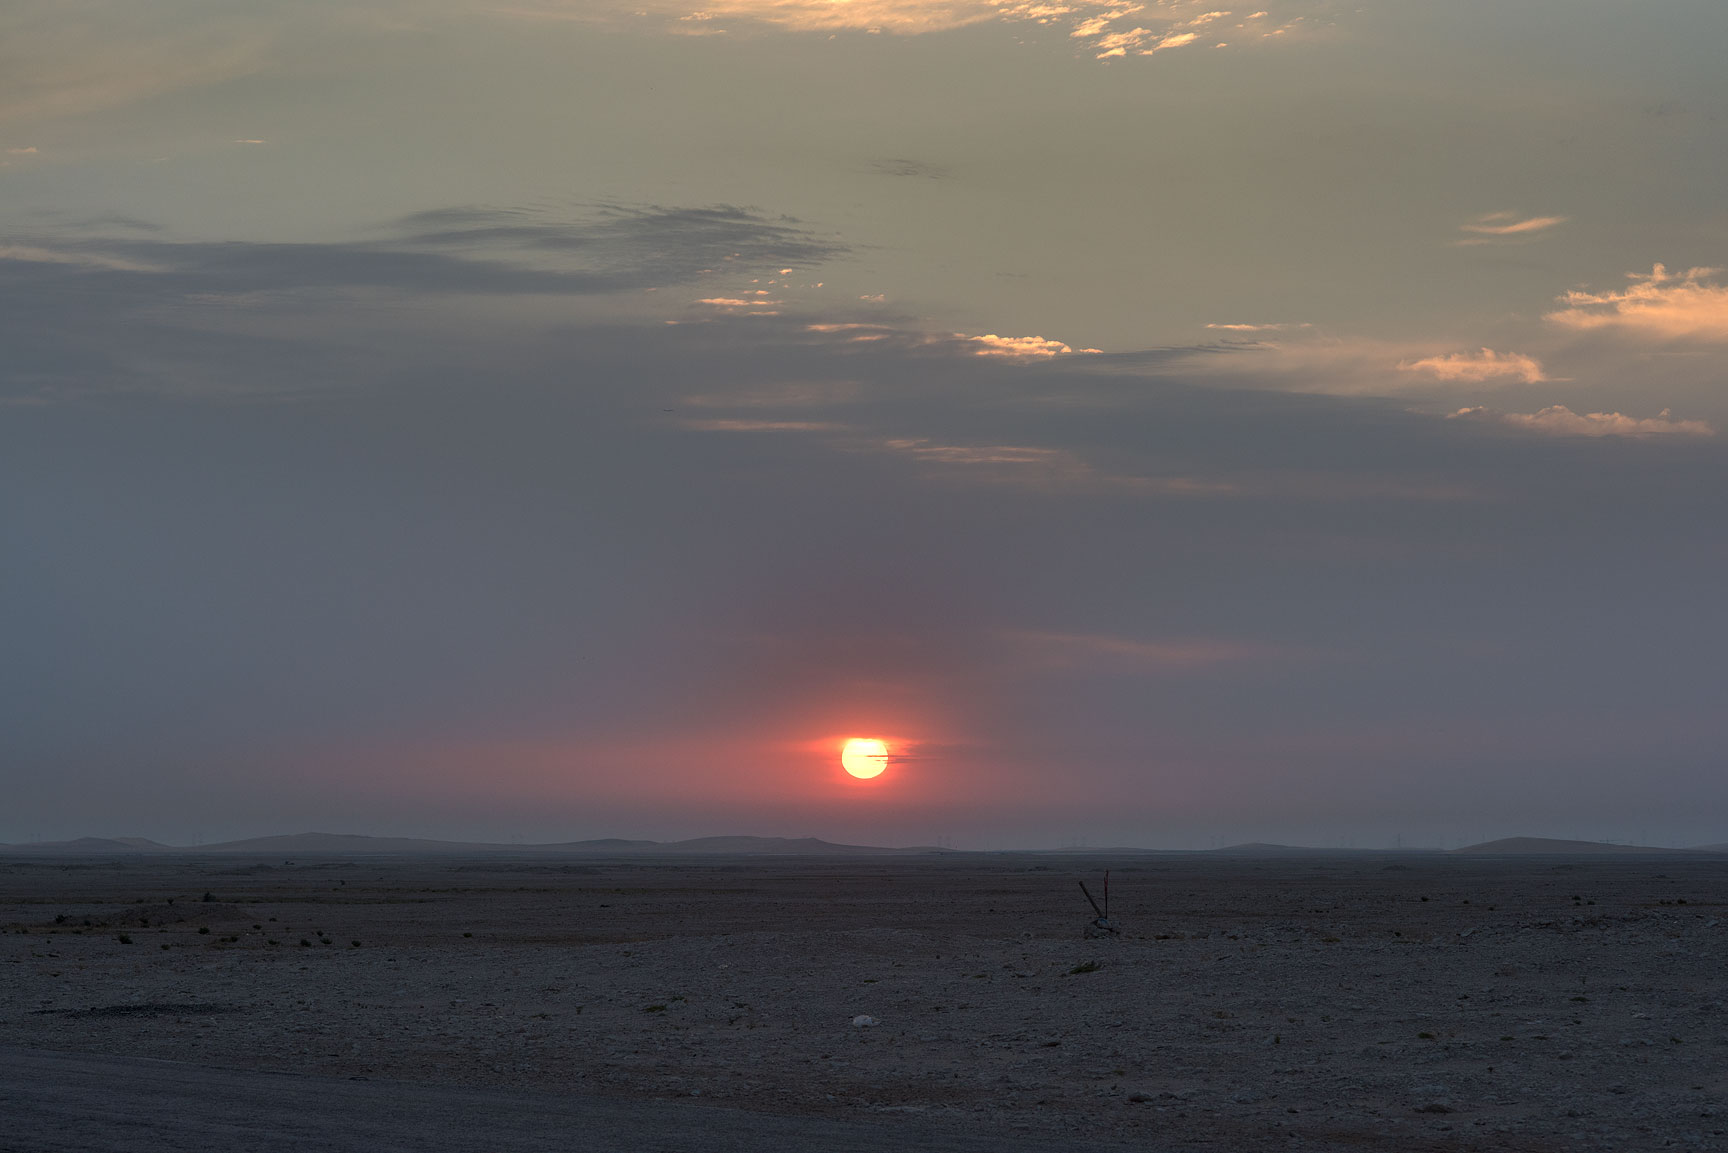 Sunrise from a road to Harrarah (Al Kharrarah). Southern Qatar